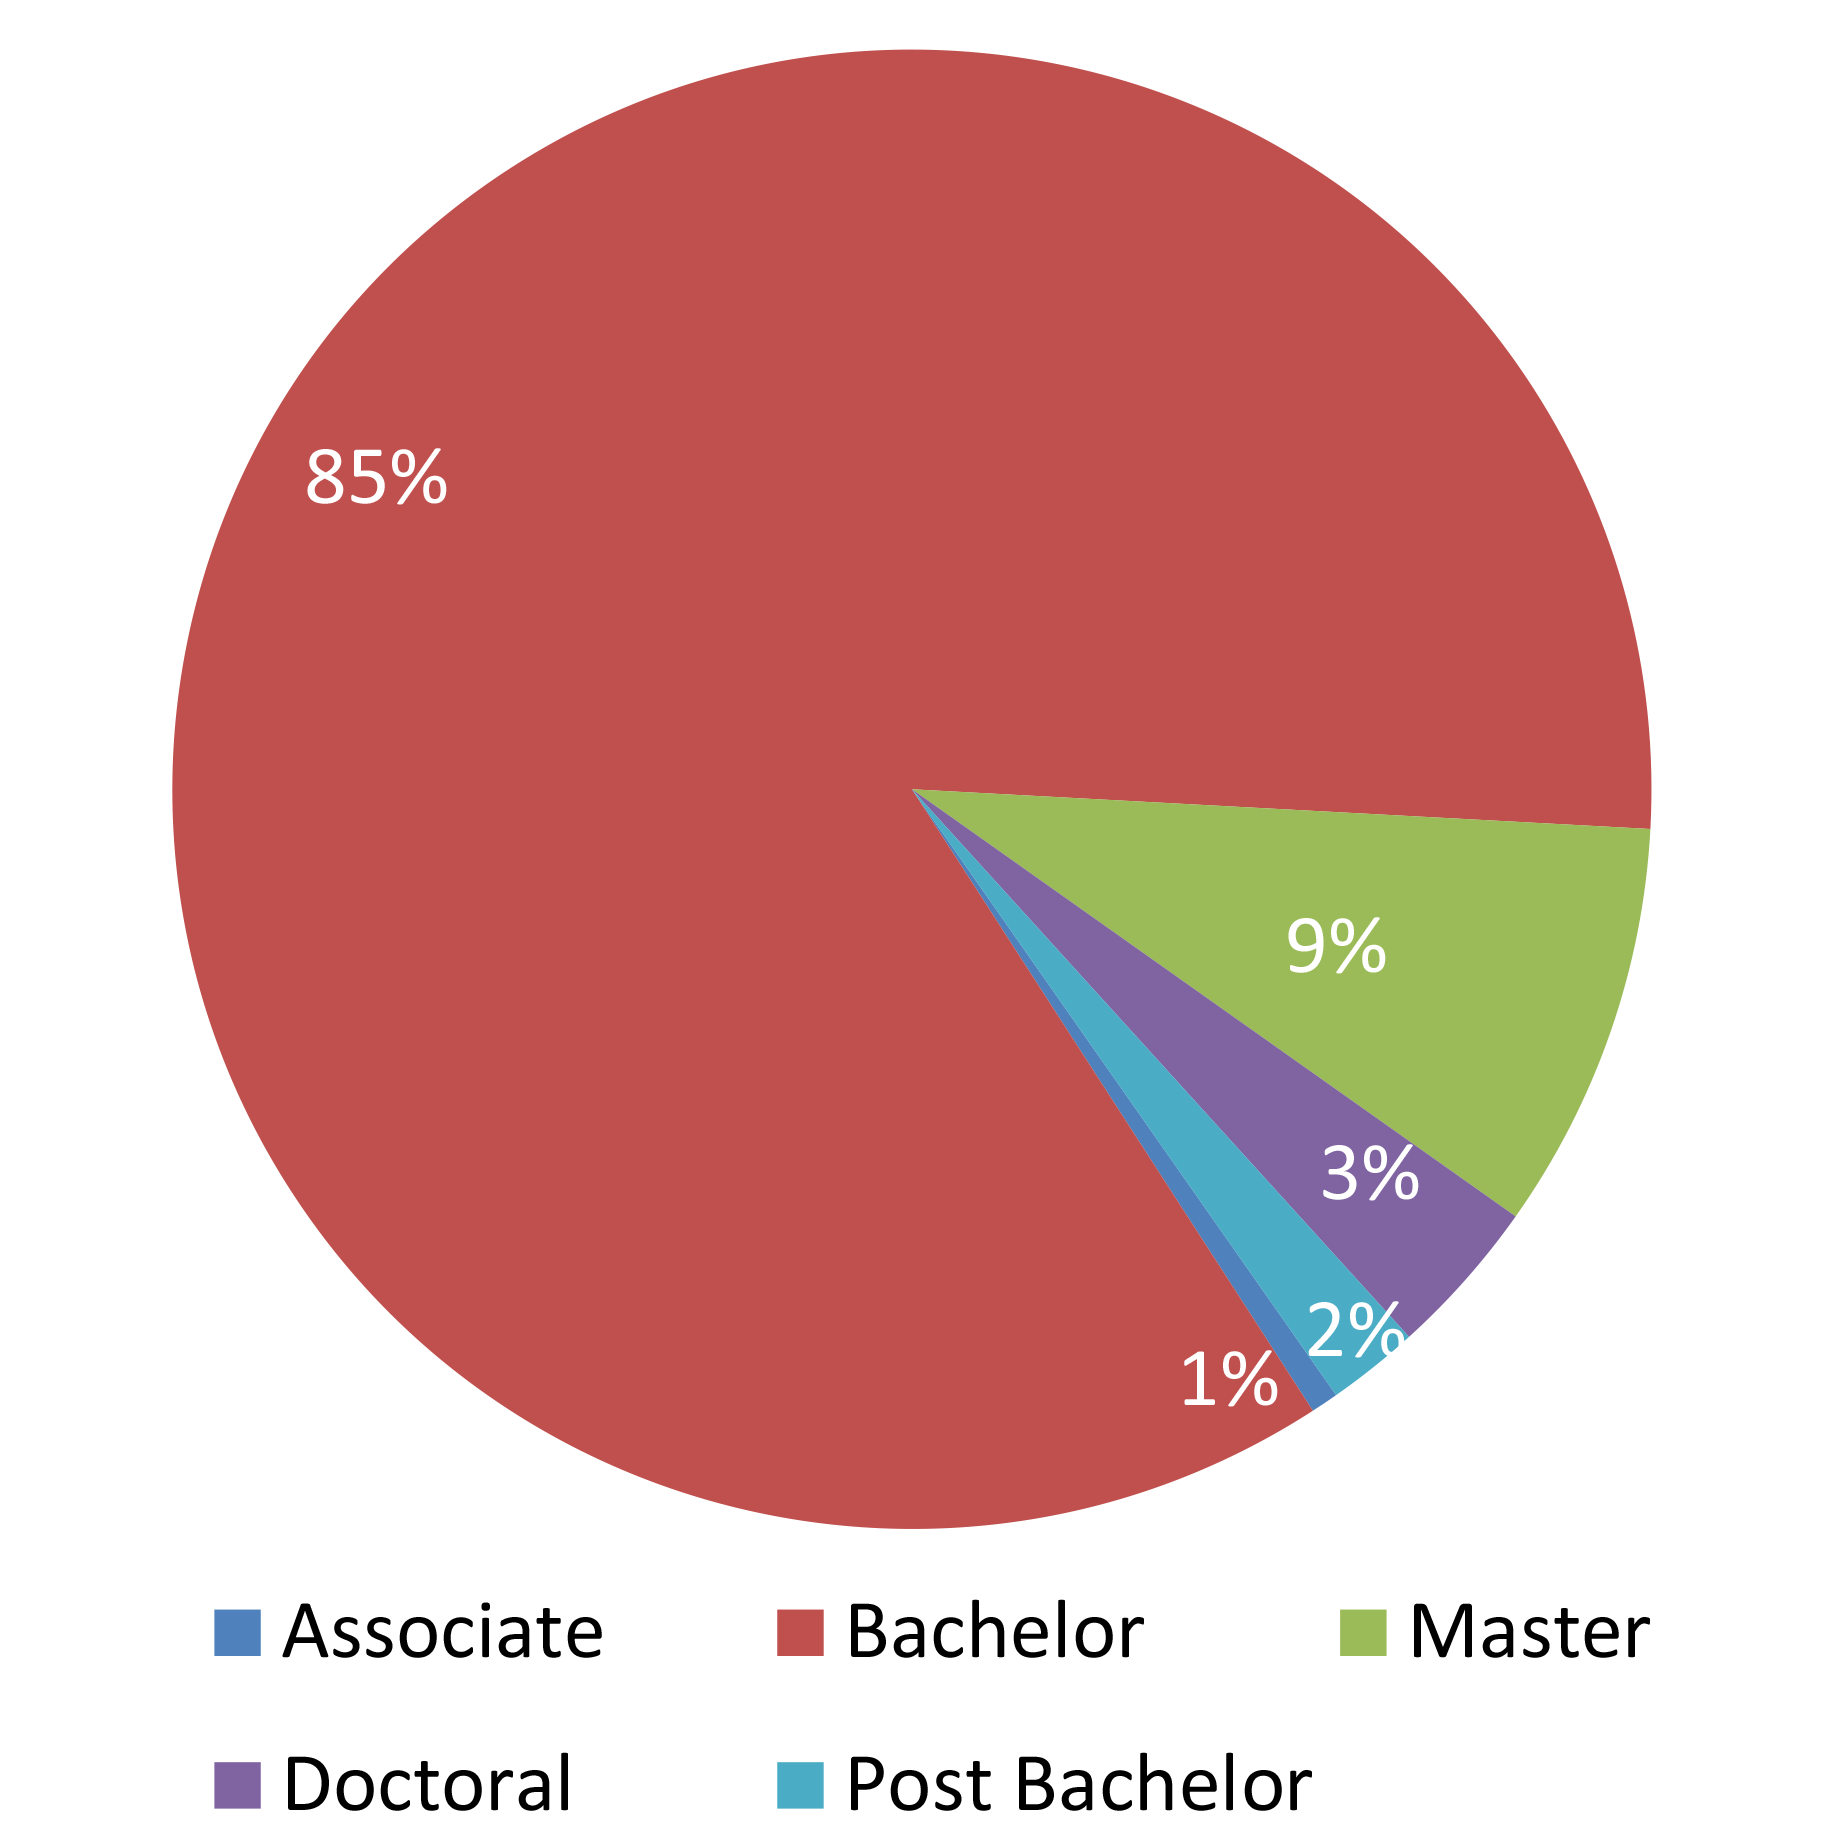 degrees-conferred-pie-uni-wide.png